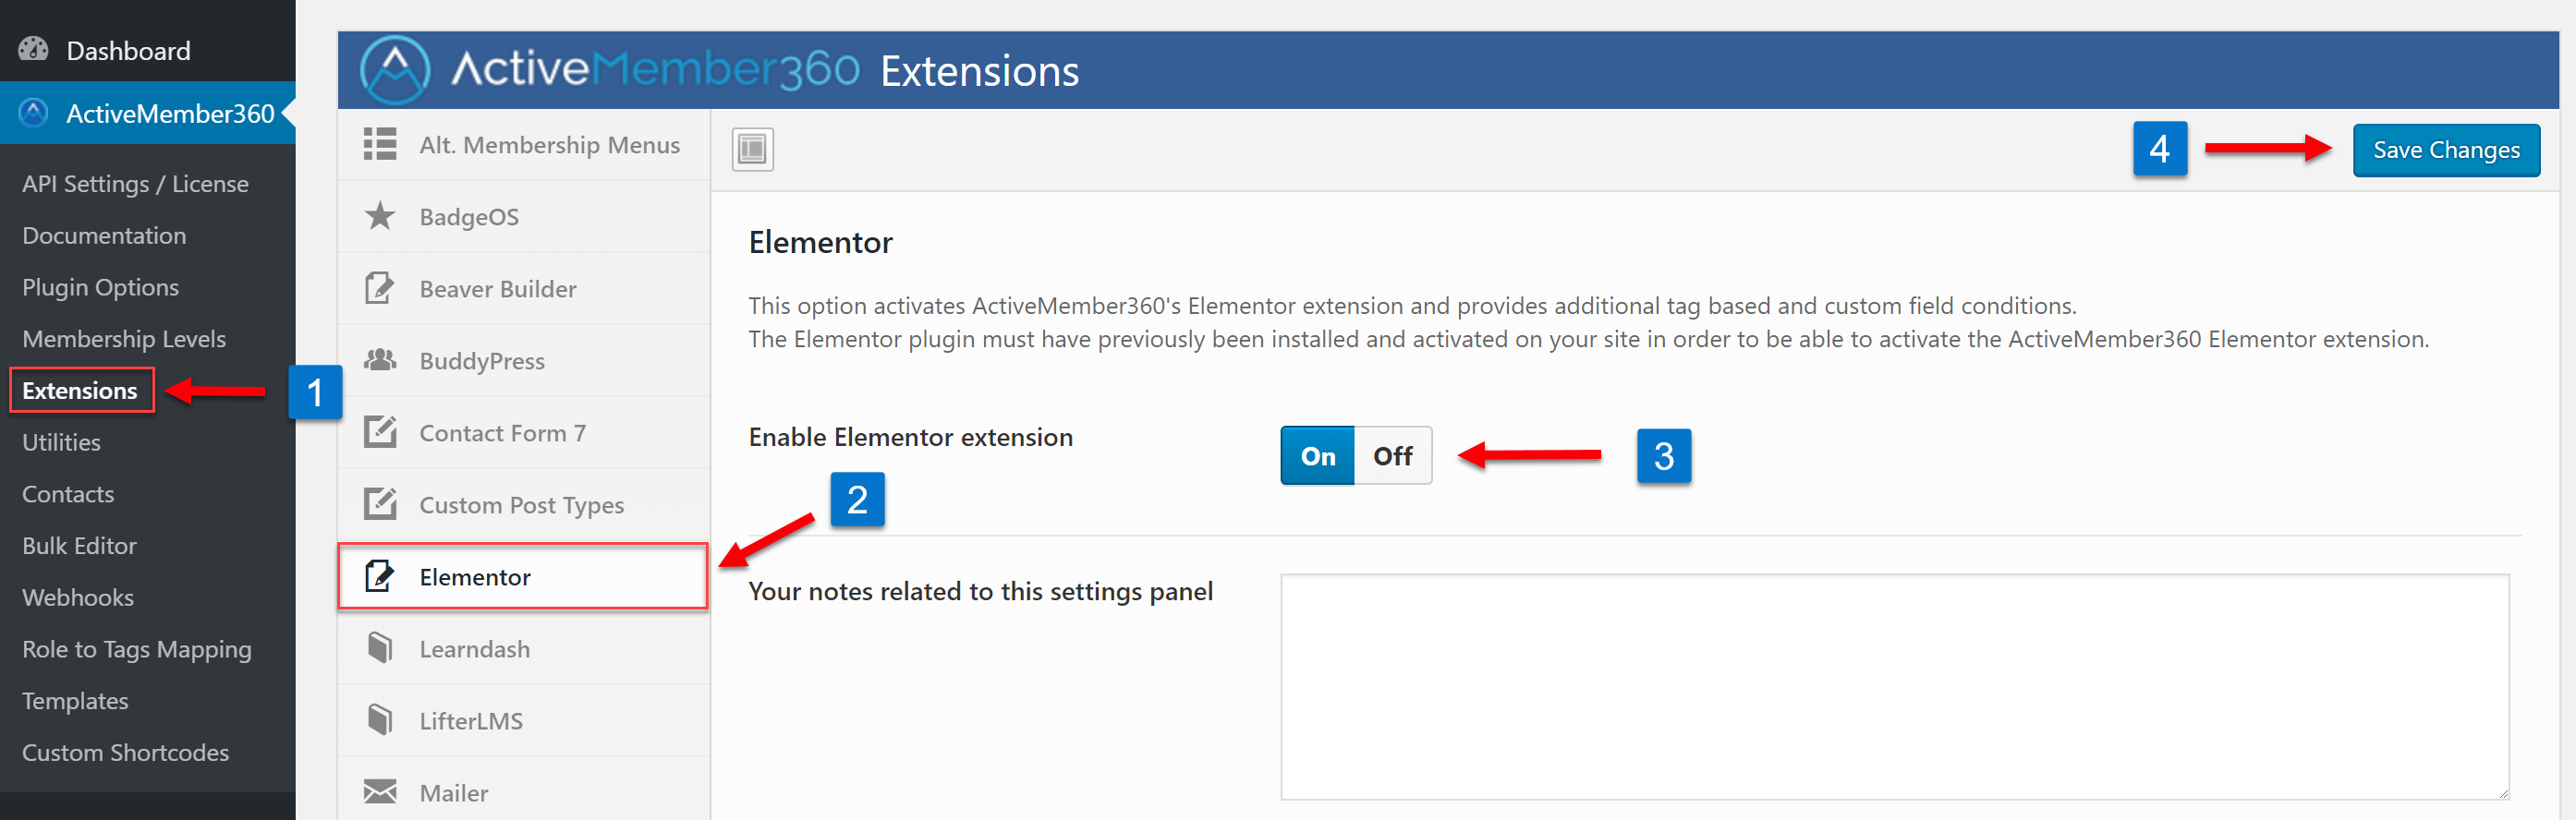 Enabling the Elementor Extension